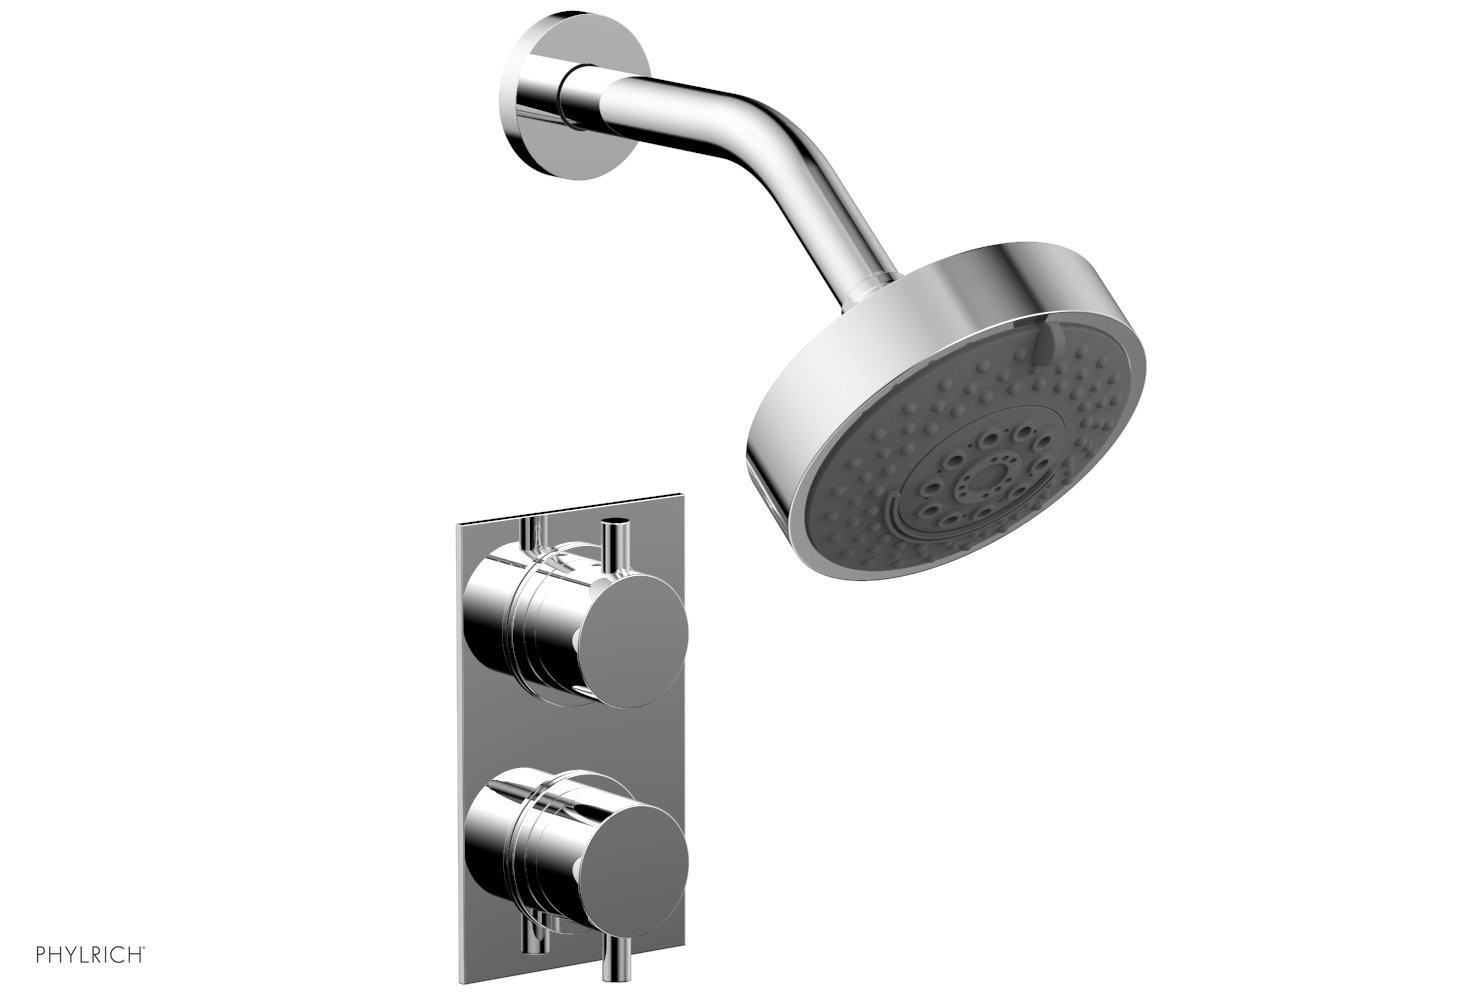 PHYLRICH 230-30 BASIC II WALL MOUNT ECONOMICAL THERMOSTATIC SHOWER SET WITH VOLUME CONTROL